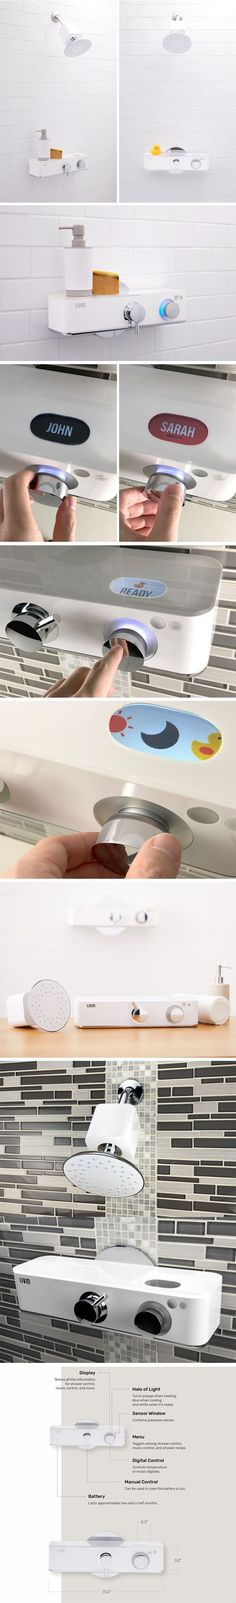 The Livin Shower valve takes care of literally everything for you. Set the temperature you want to bathe at and the Livin does the rest. You can even set your own profile on the shower's companion app, saving your preferences along with those of the rest of the family. Alternating between shower profiles to bathe is very simple. Livin was built out of the simple reason that finding the ideal shower temperature was a monumental waste of time and water. BUY NOW!